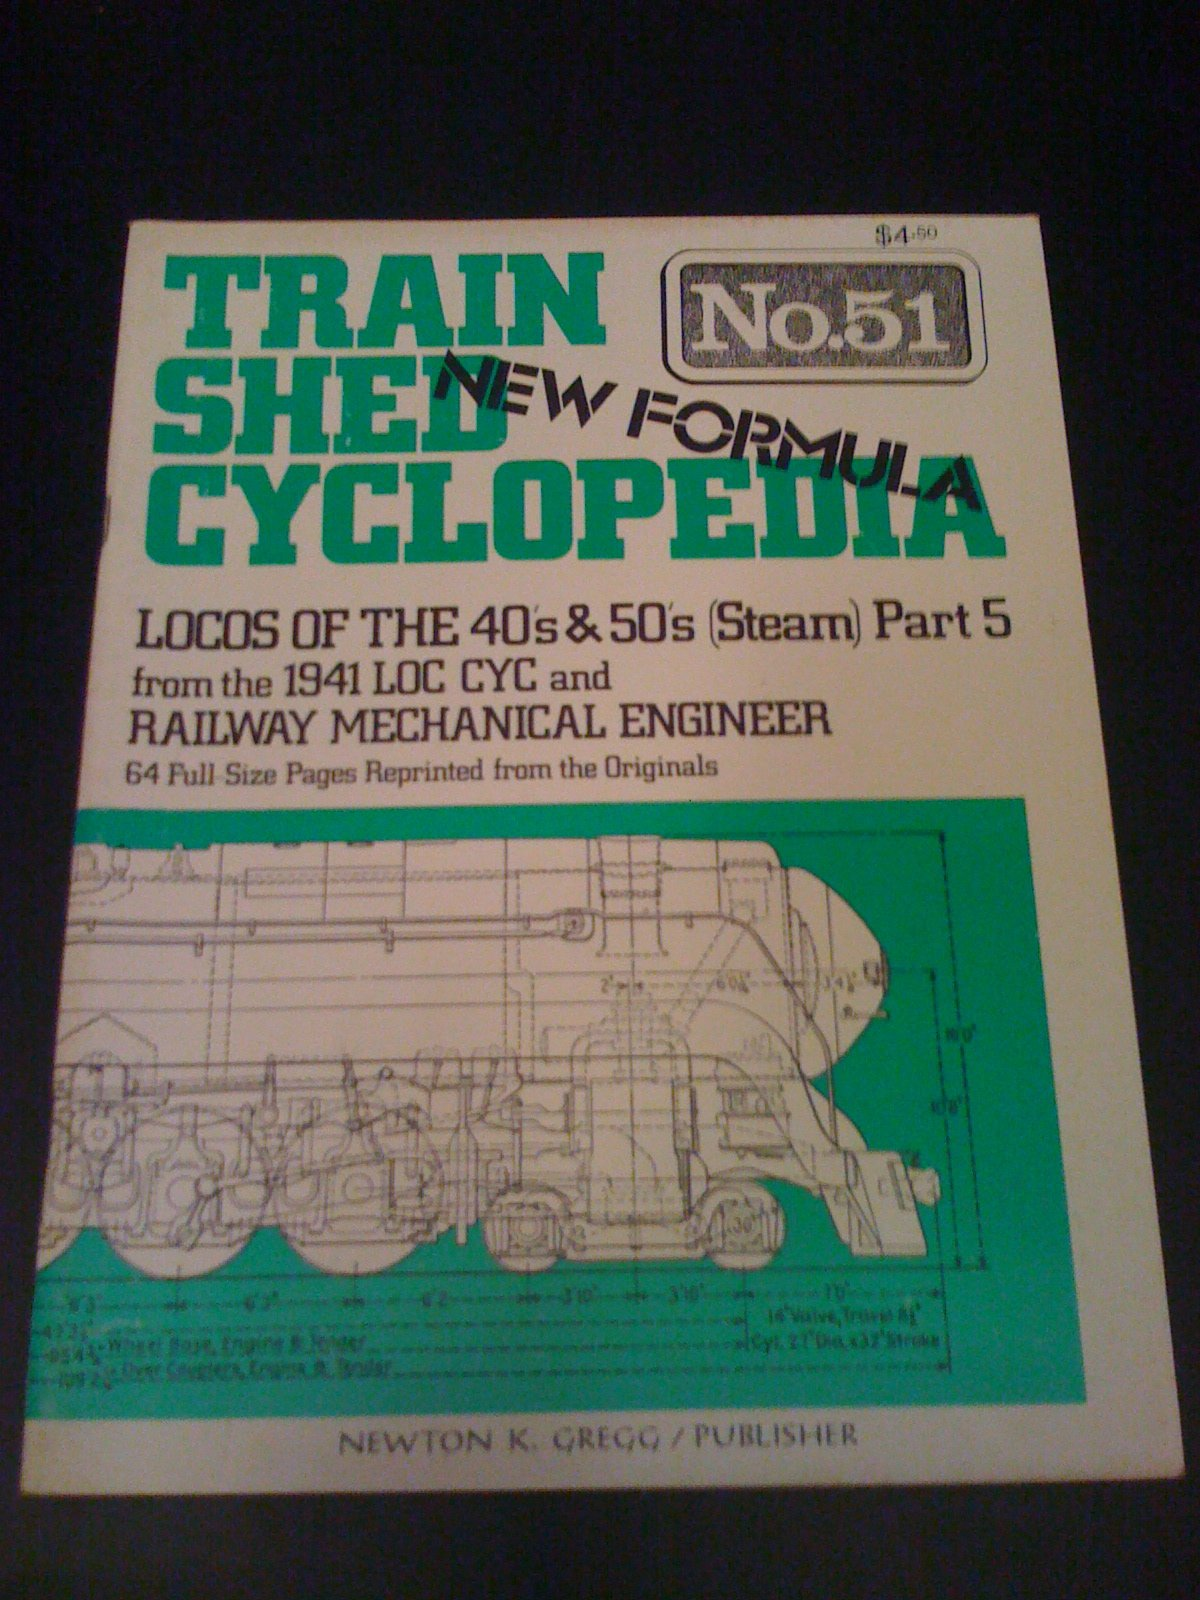 Train Shed Cyclopedia No. 51: Locos of the 40's and 50's (Steam) Part 5 from the 1941 LOC CYC and Railway Mechanical Engineer